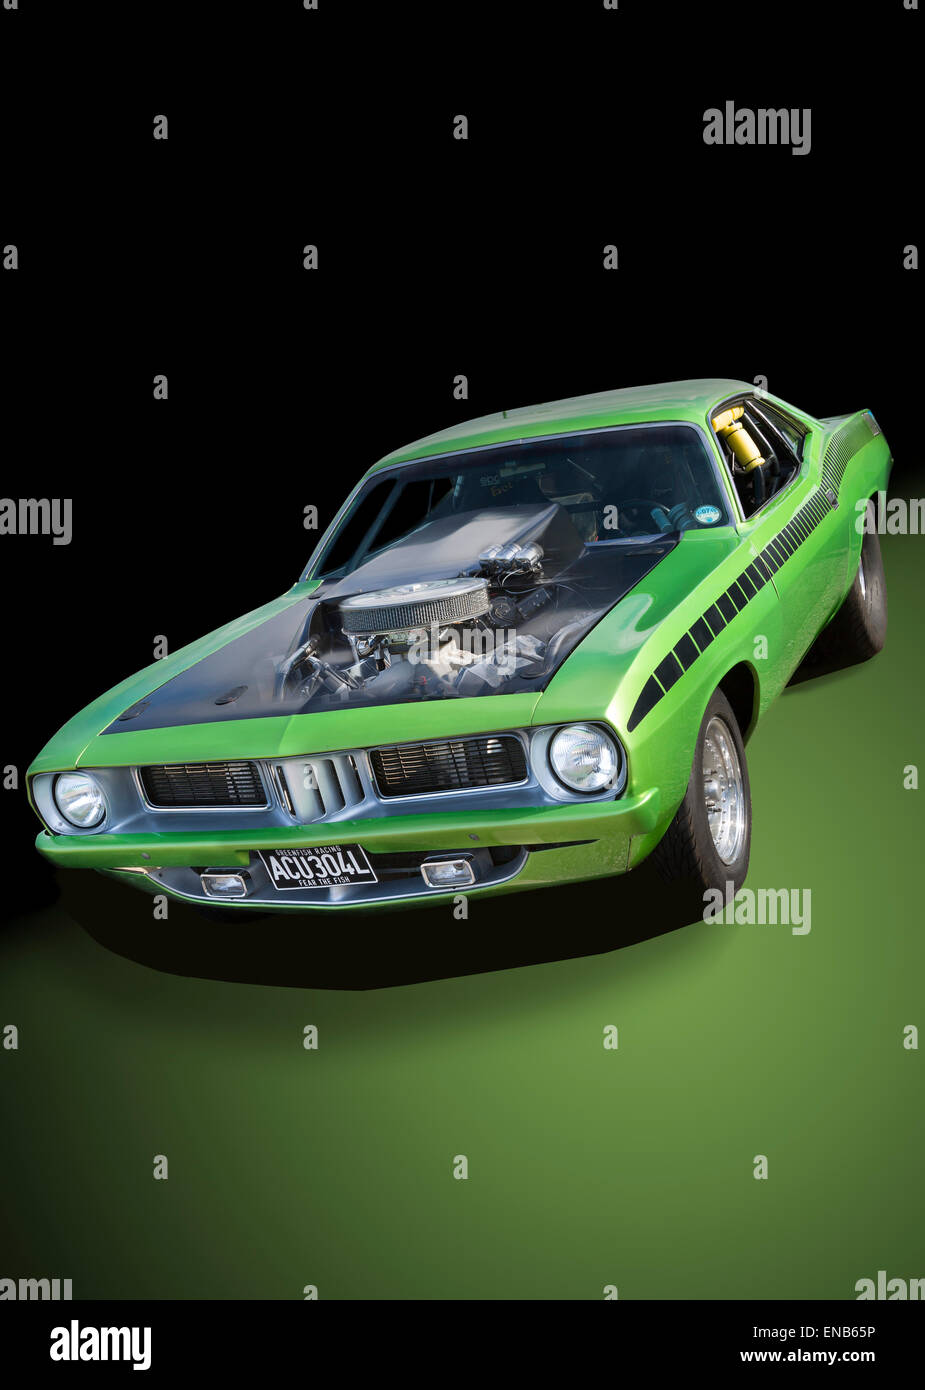 Plymouth Barracuda graphical green to black background - Stock Image